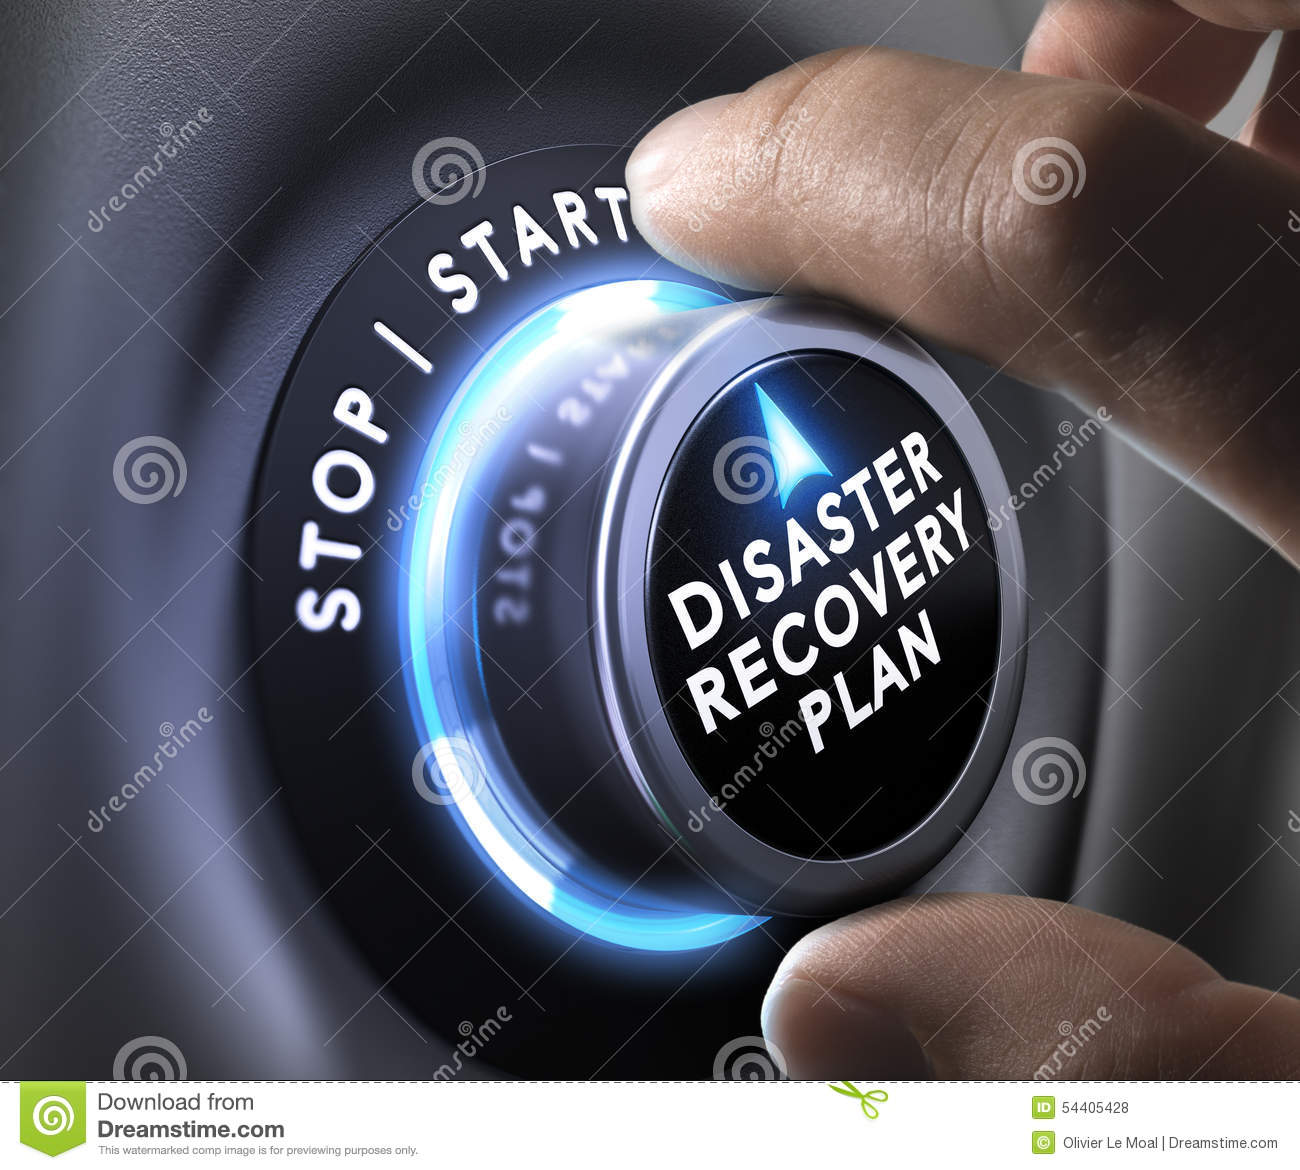 Disaster Recovery Plan Drp Stock Photo Image 54405428